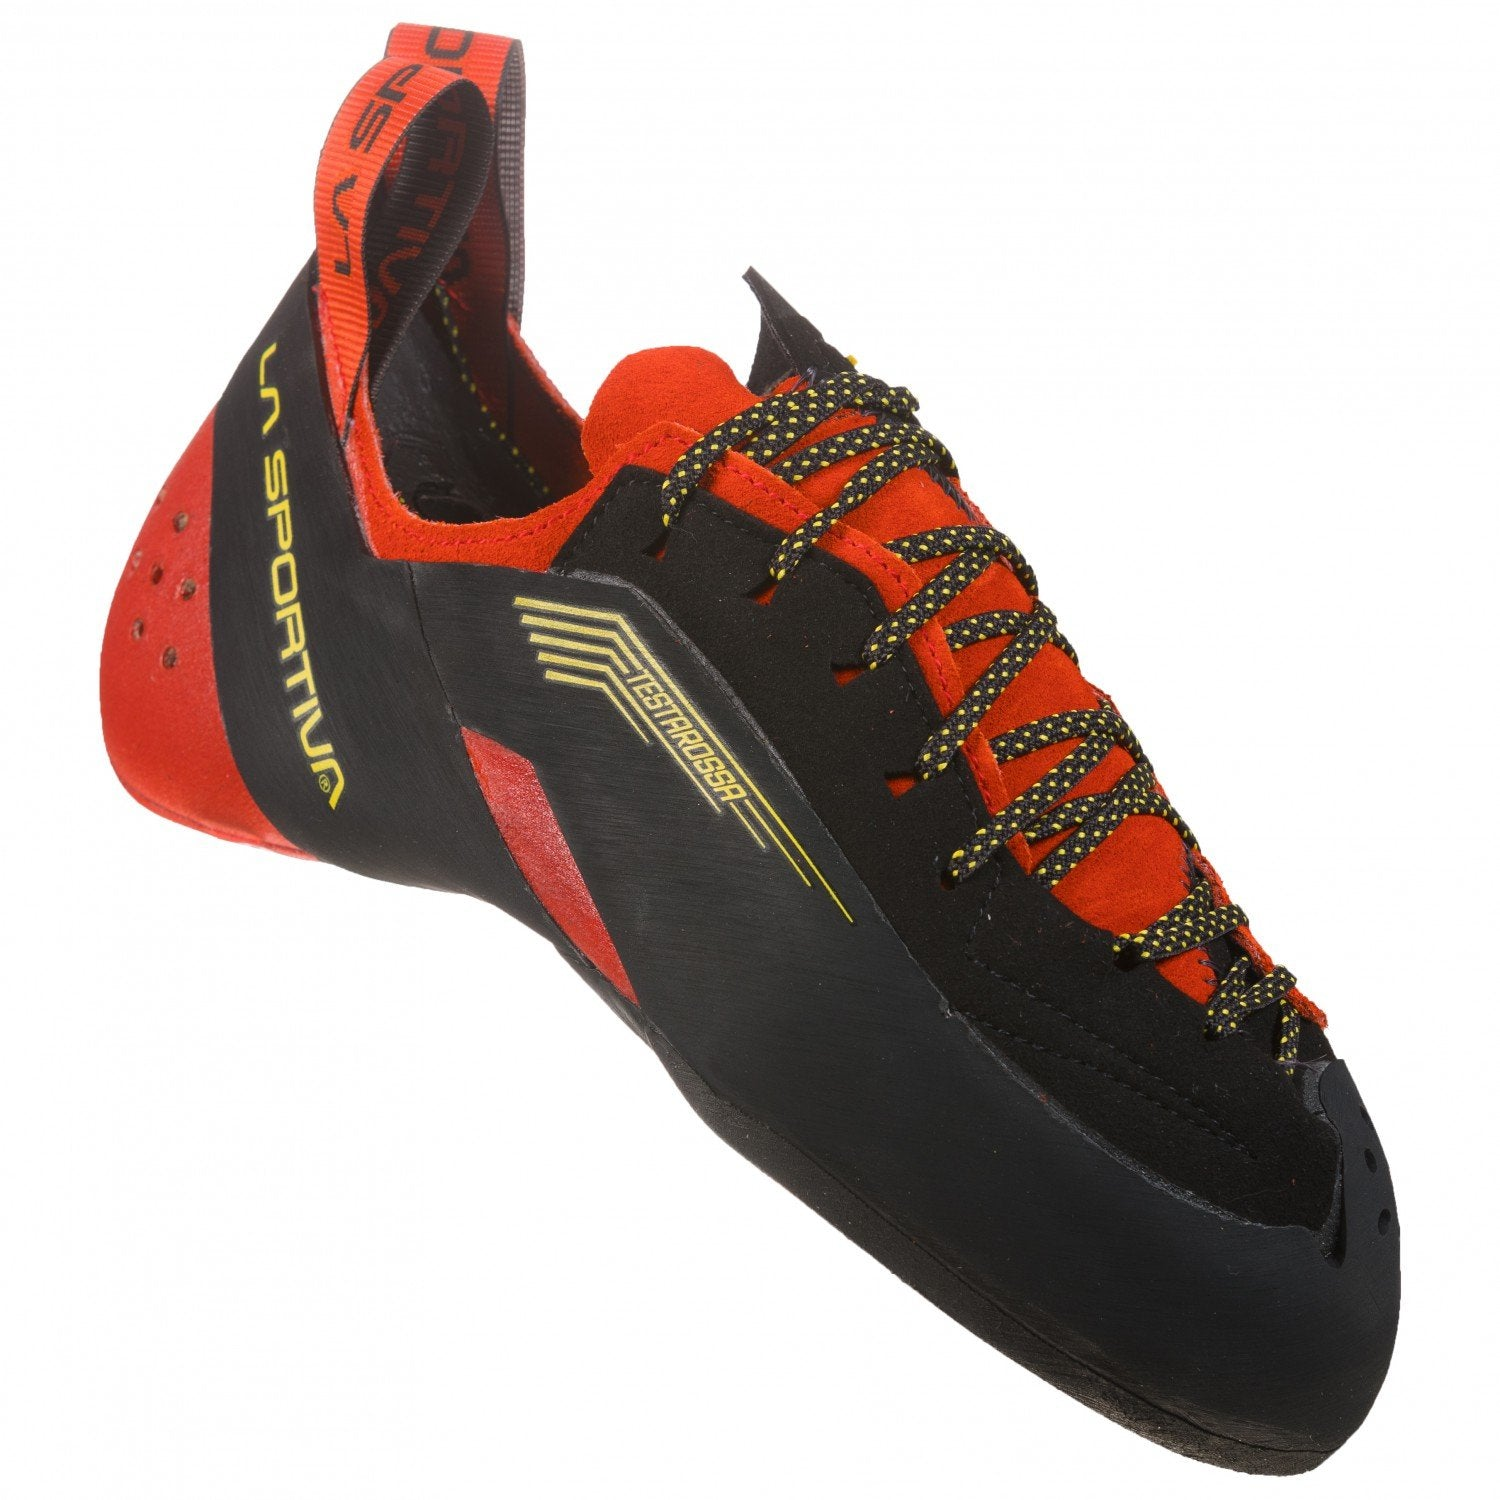 La Sportiva Testarossa climbing shoe, outer side view in red and black colours